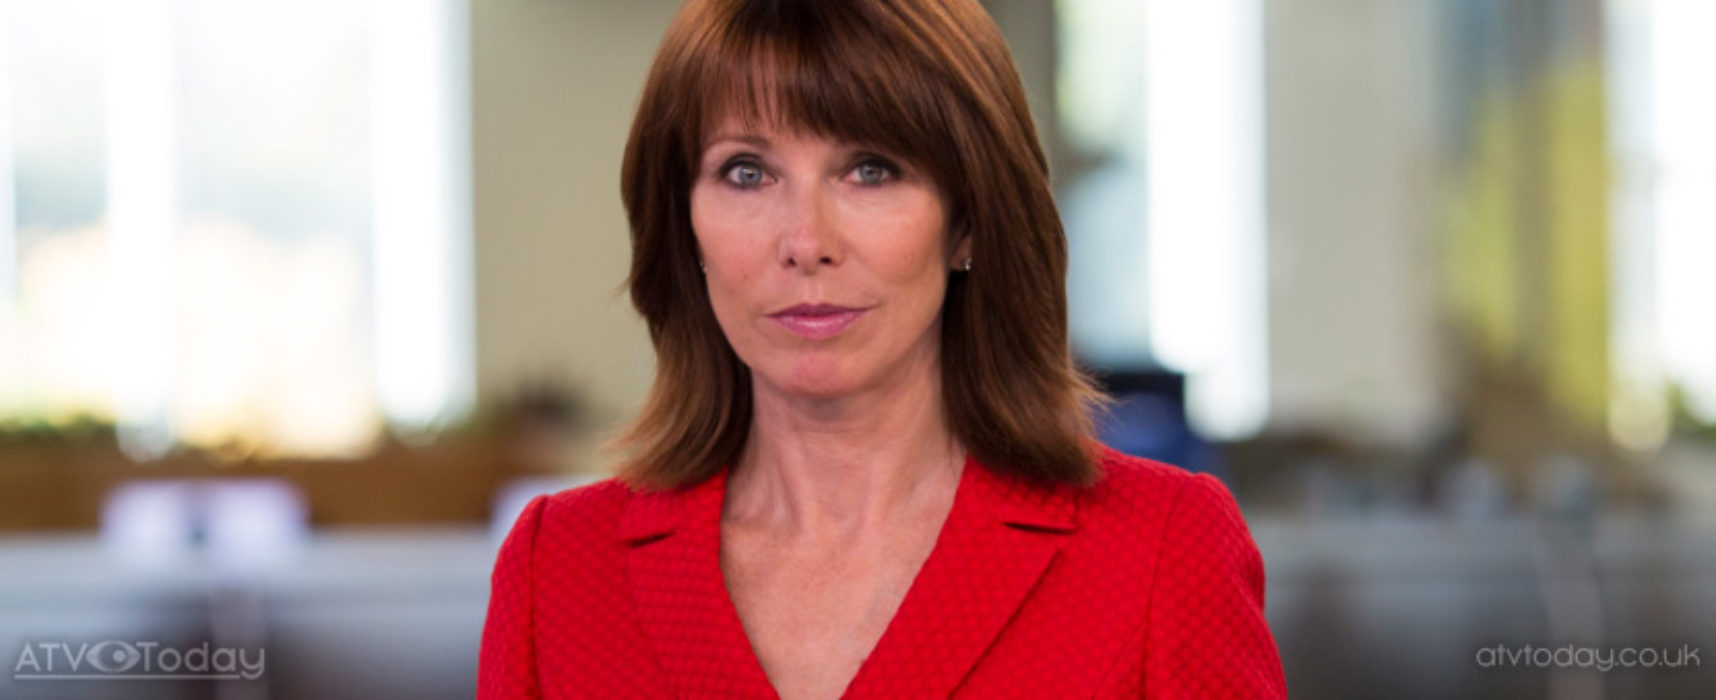 Kay Burley to host Sky News breakfast show